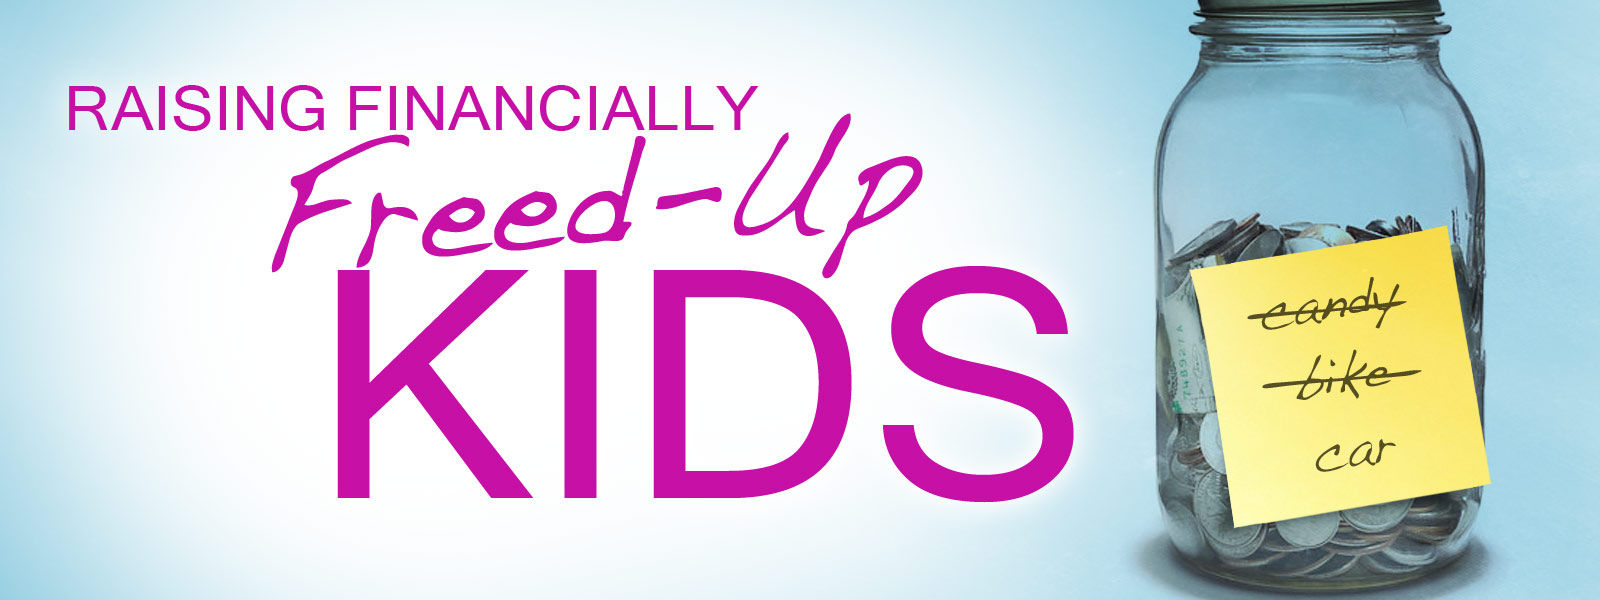 Raising Financially Freed-Up Kids